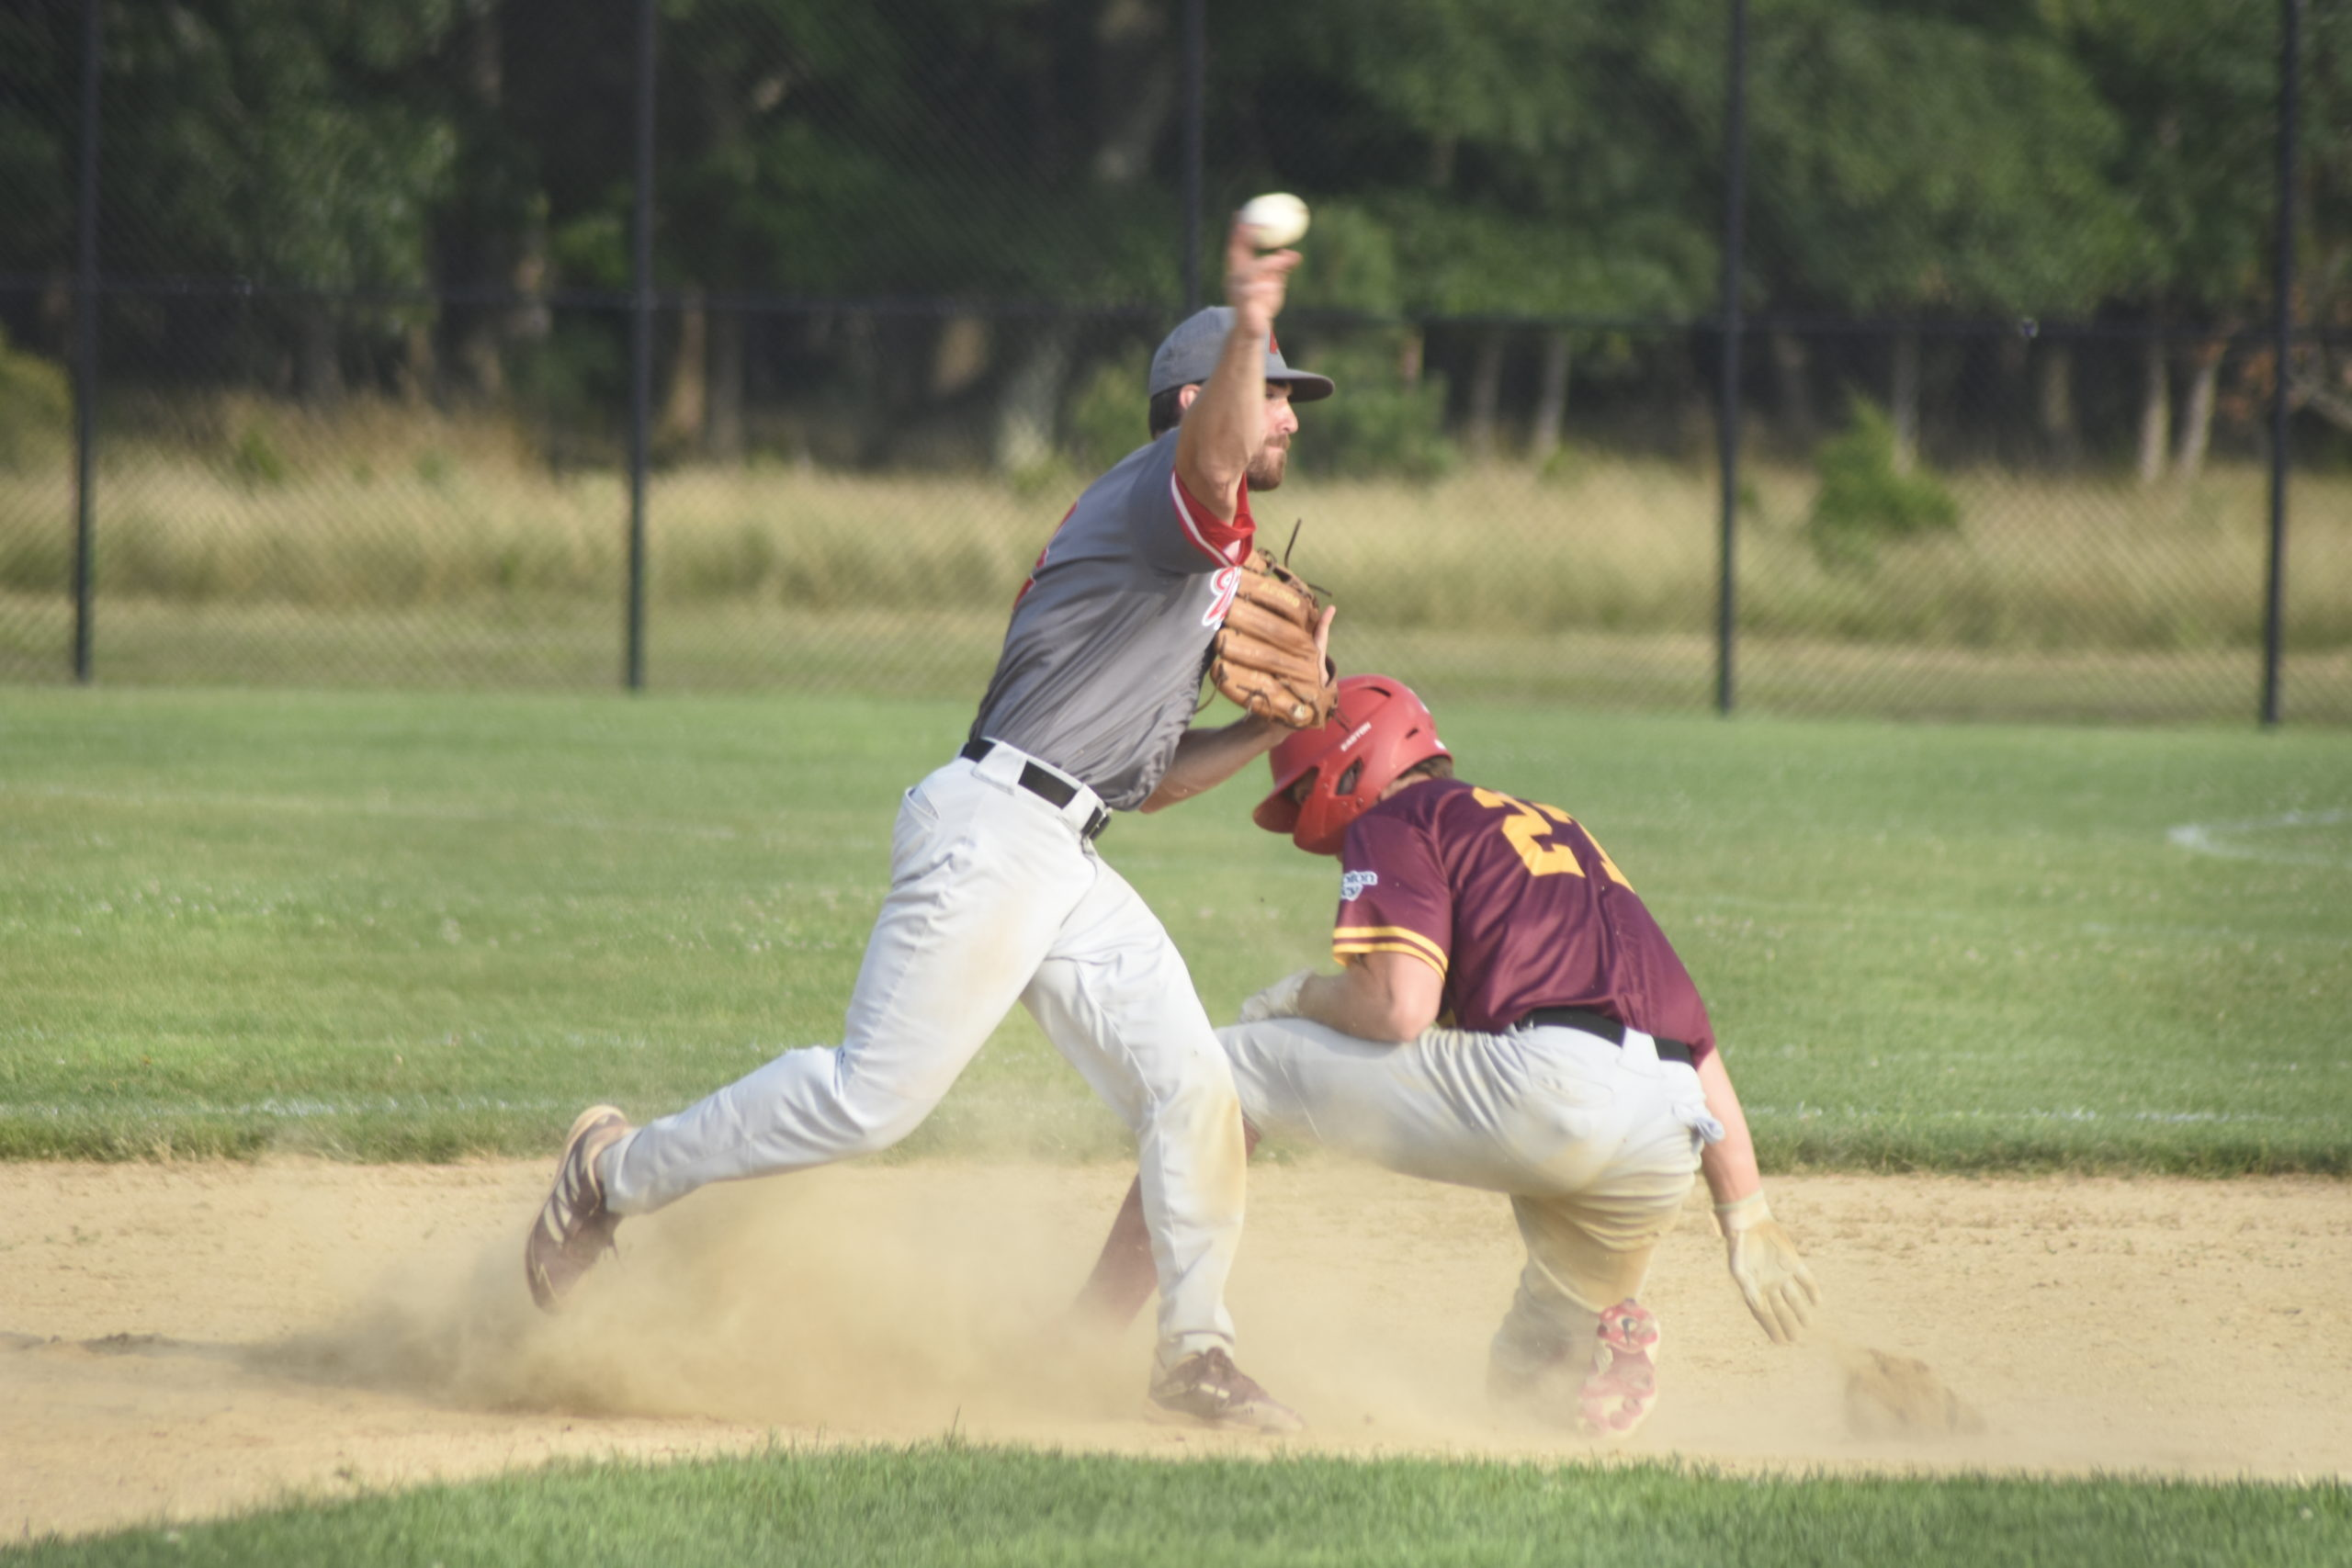 Westhampton second baseman Jake Liberatore (Iona) fires to first to try and get the back end of a double play.